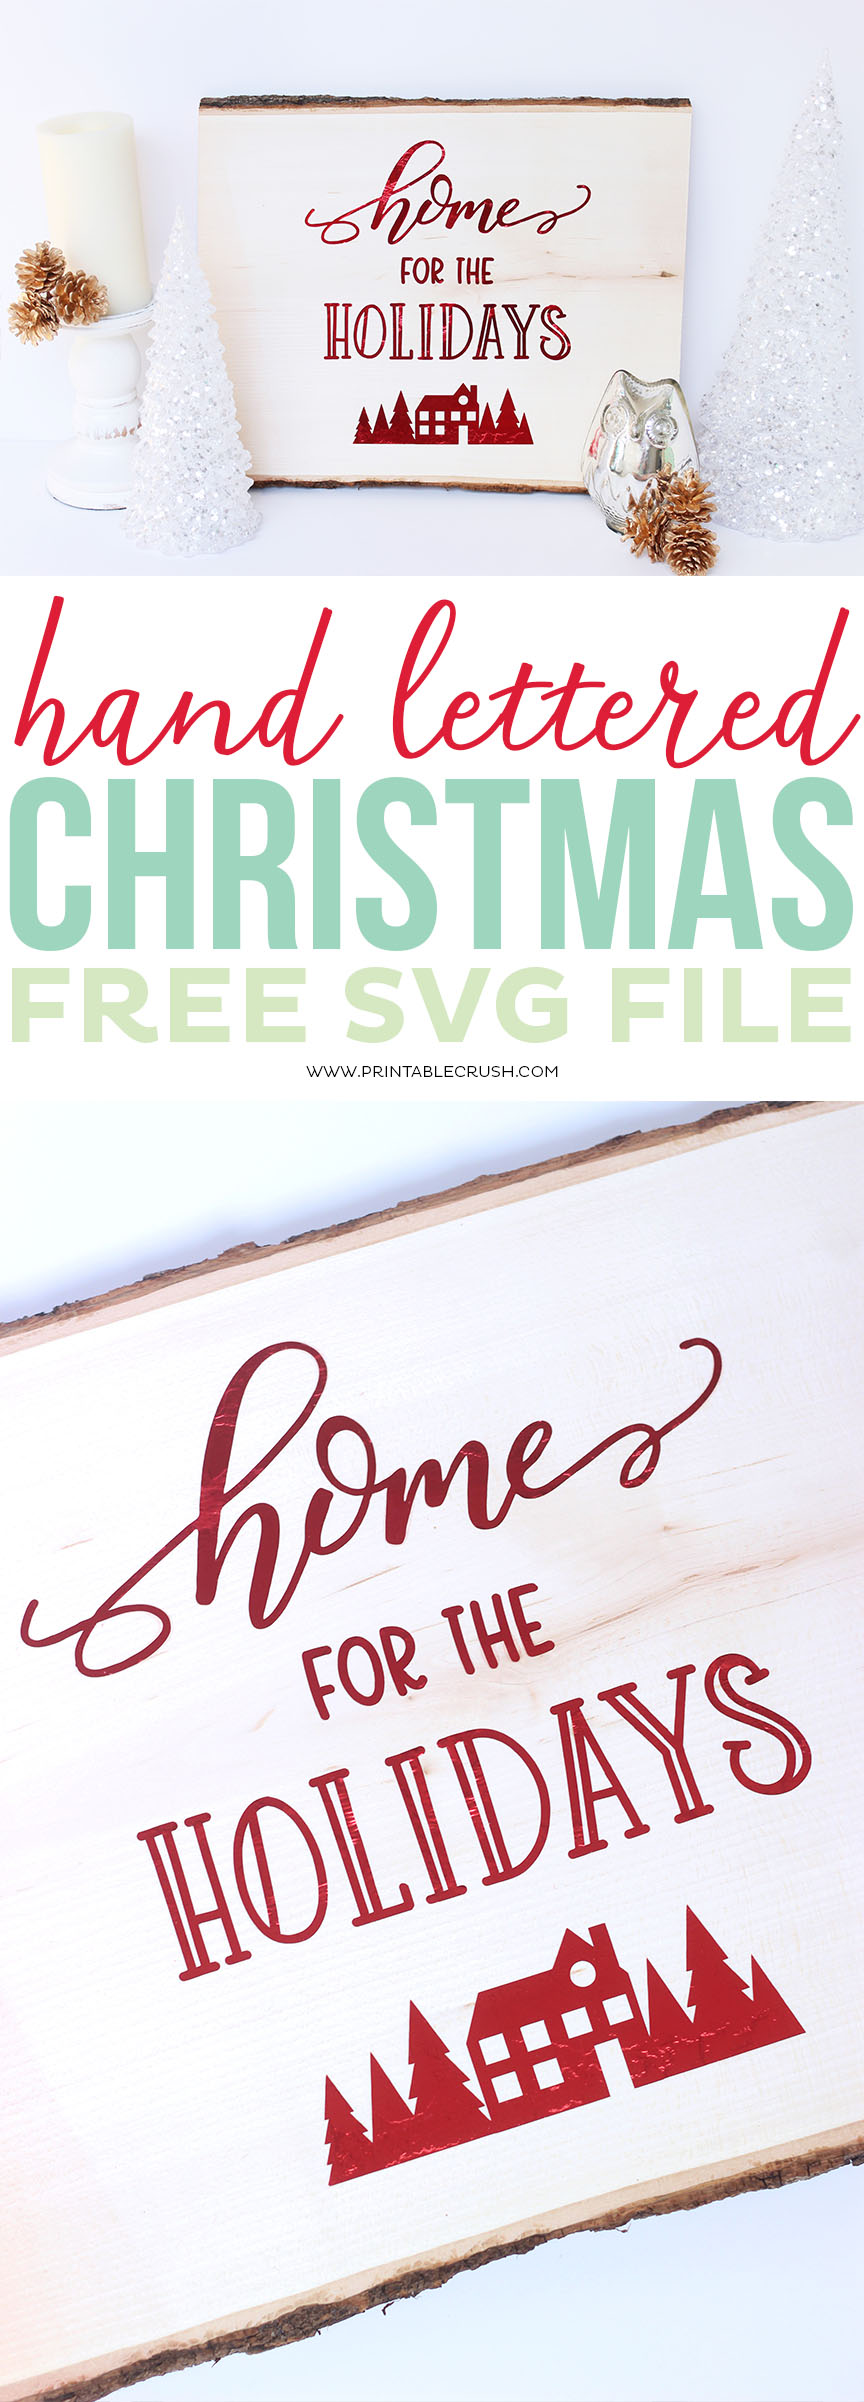 Use this Hand Lettered FREE Christmas SVG File to create home decor, t-shirts, ornaments, and more! This tutorial will also show you how to use the EasyPress on wood! #easypress #cricutmade #cricuteasypress #freesvgfile #freechristmassvgfile #christmassvgfile #homefortheholidays #walnuthollow